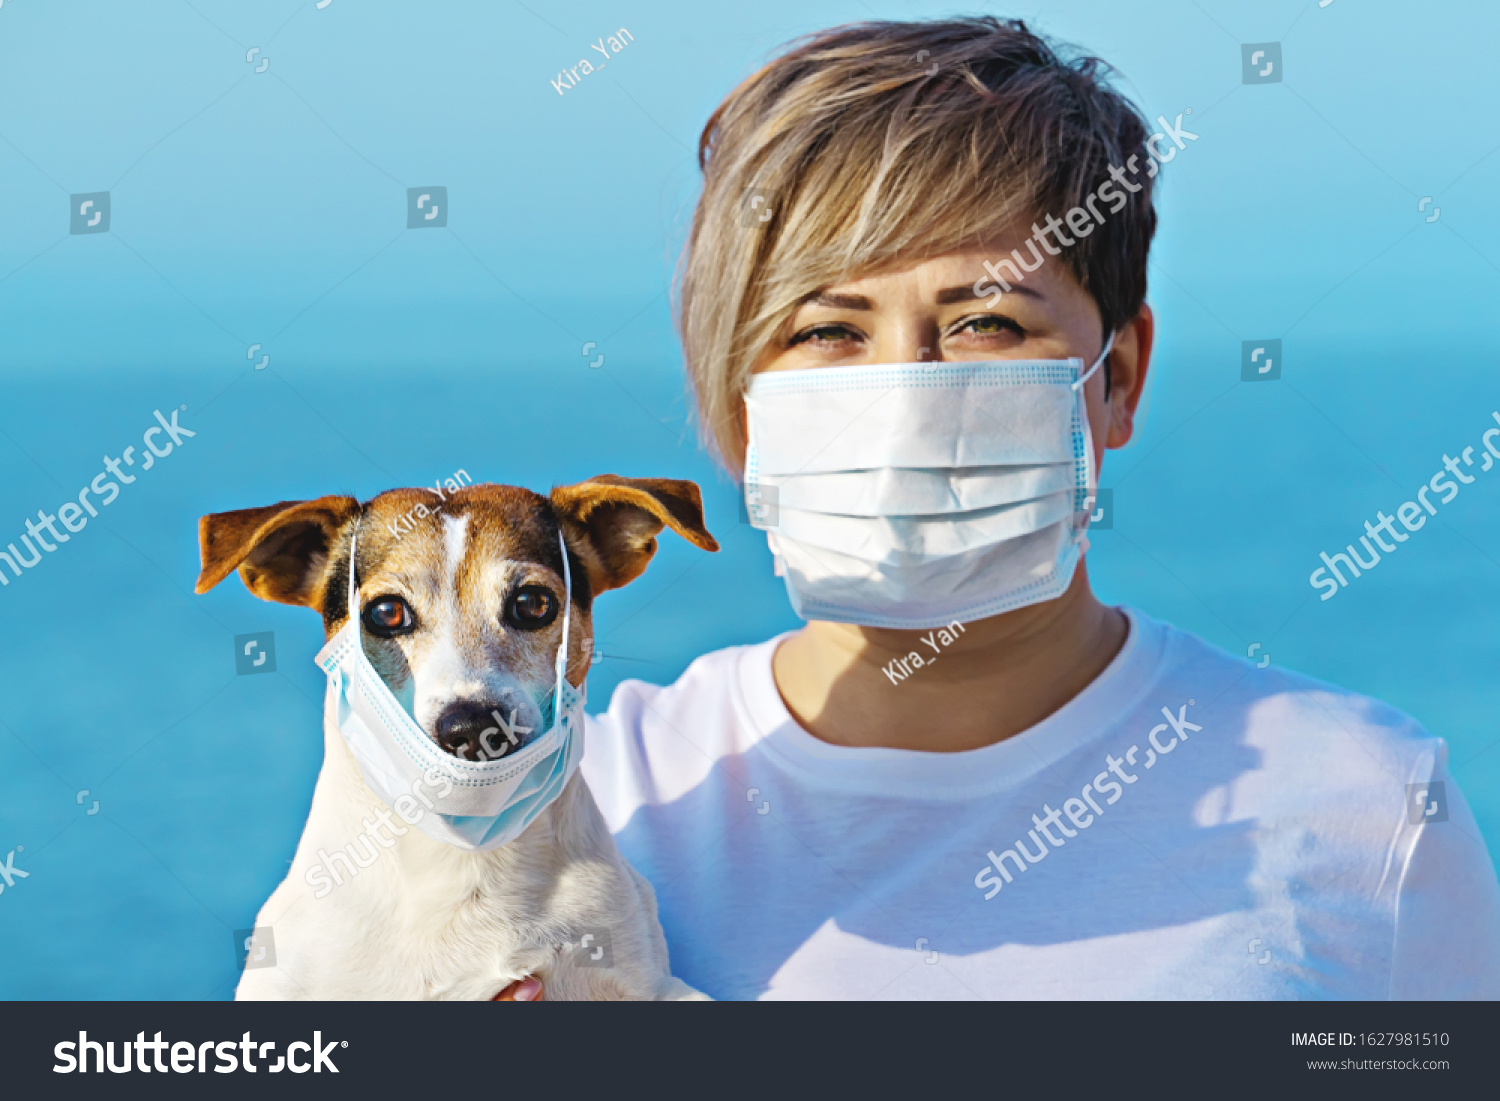 Woman in protective surgical mask holds dog pet in face mask. Chinese Coronavirus disease COVID-19 is dangerous for pets #1627981510